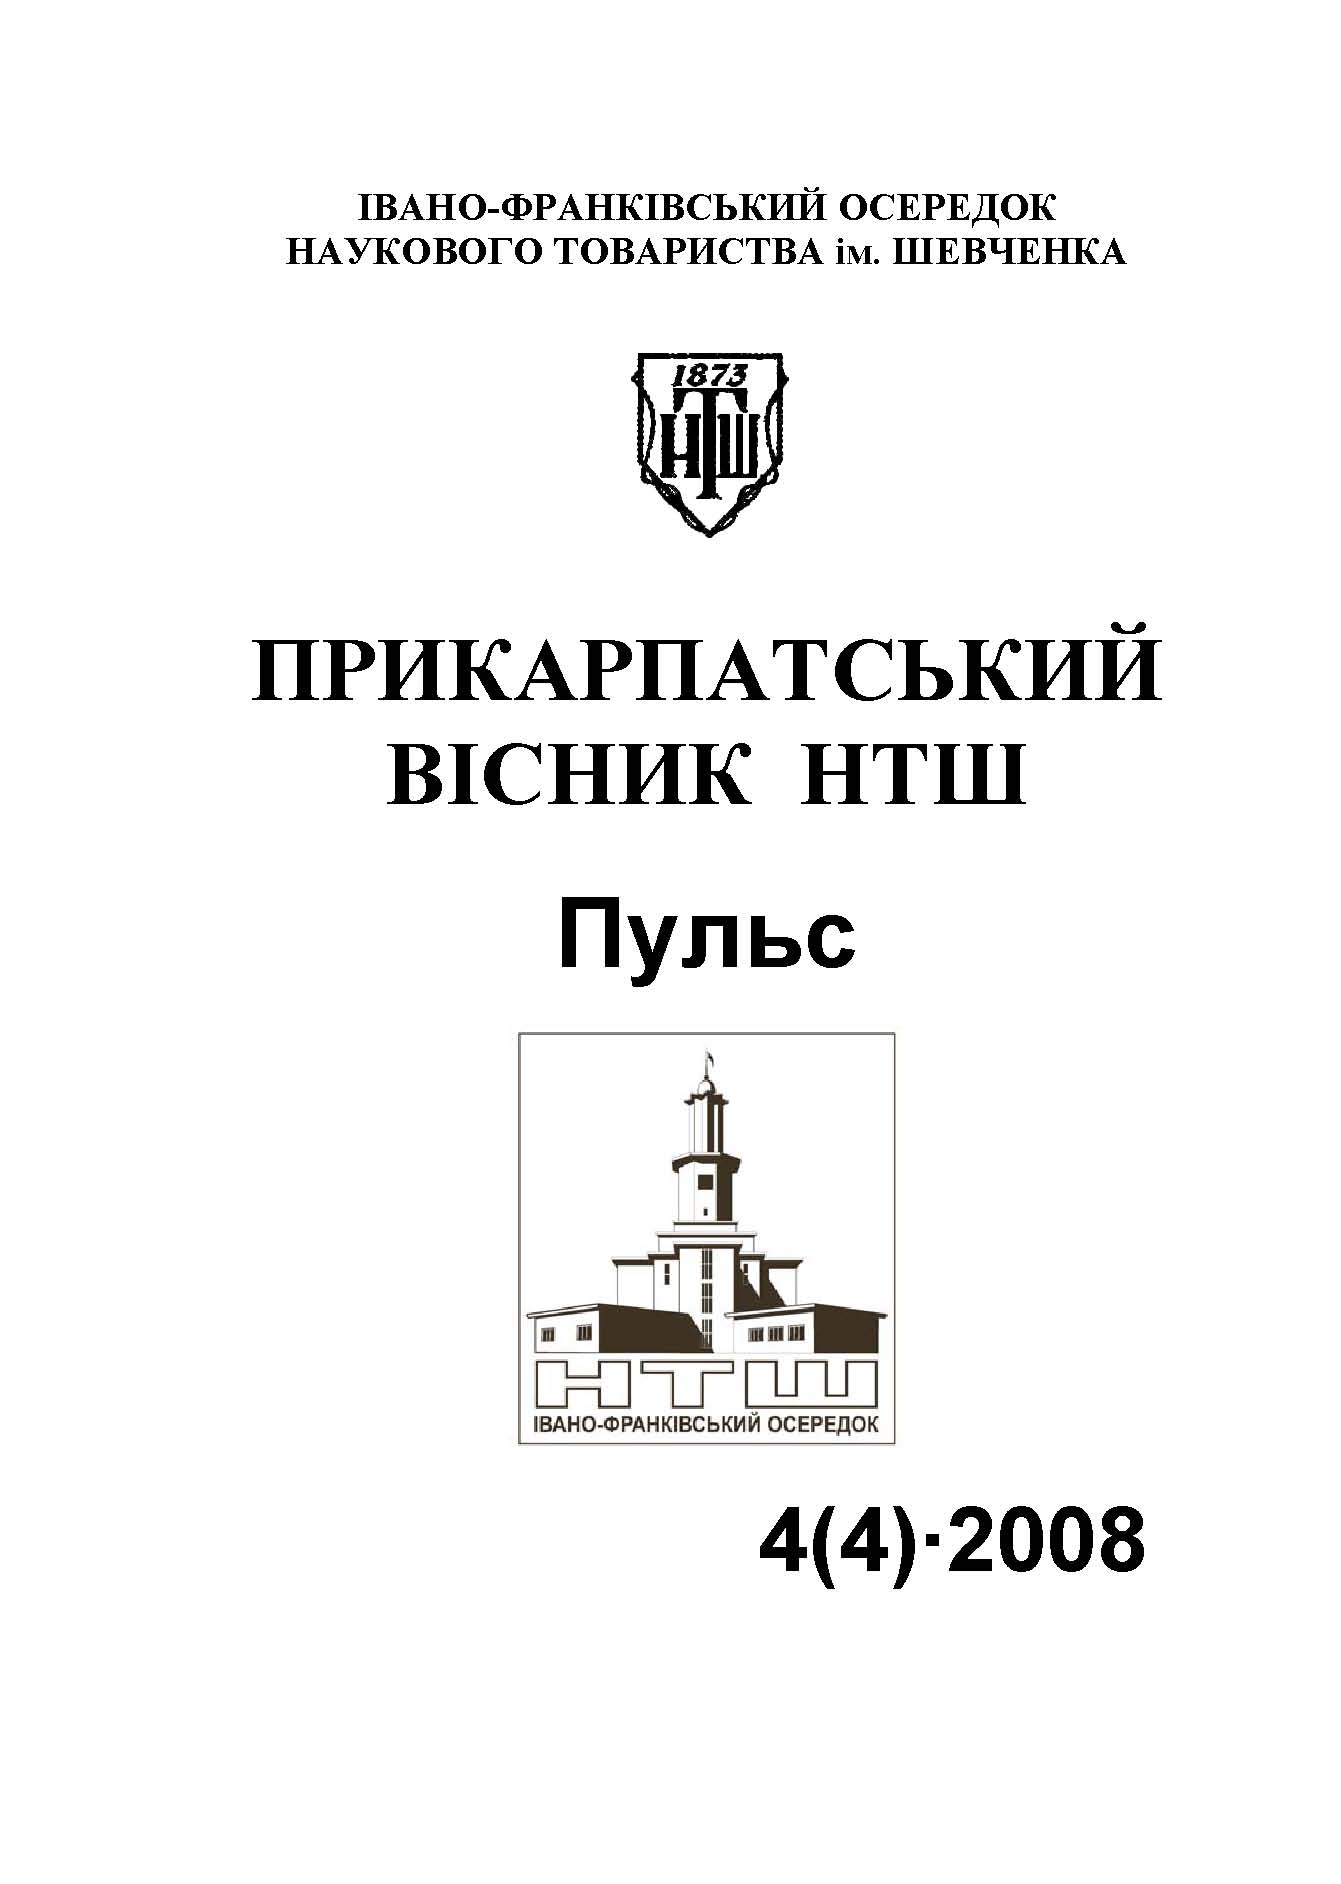 View No. 4(4) (2008): PRECARPATHIAN BULLETIN of the SHEVCHENKO SCIENTIFIC SOCIETY Pulse